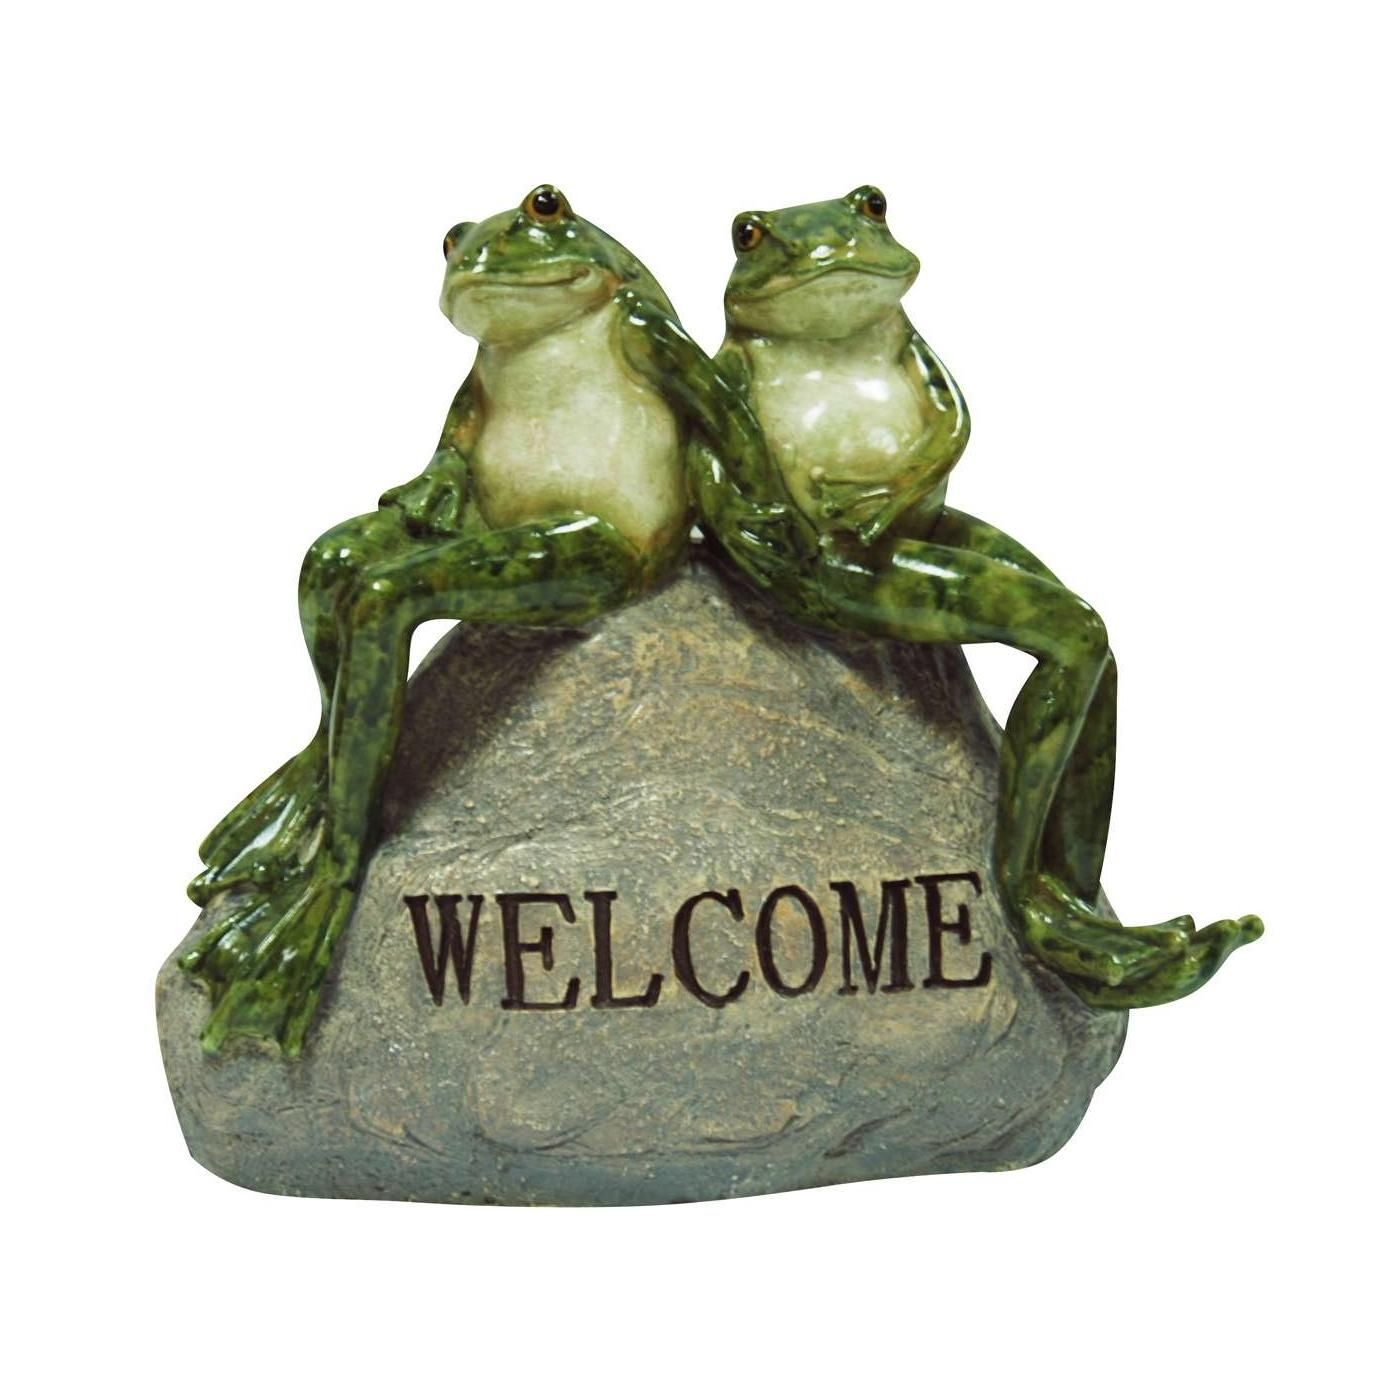 This Delightful Garden Statue Featuring 2 Frogs Sitting On Rock By Alpine  Will Add A Nice